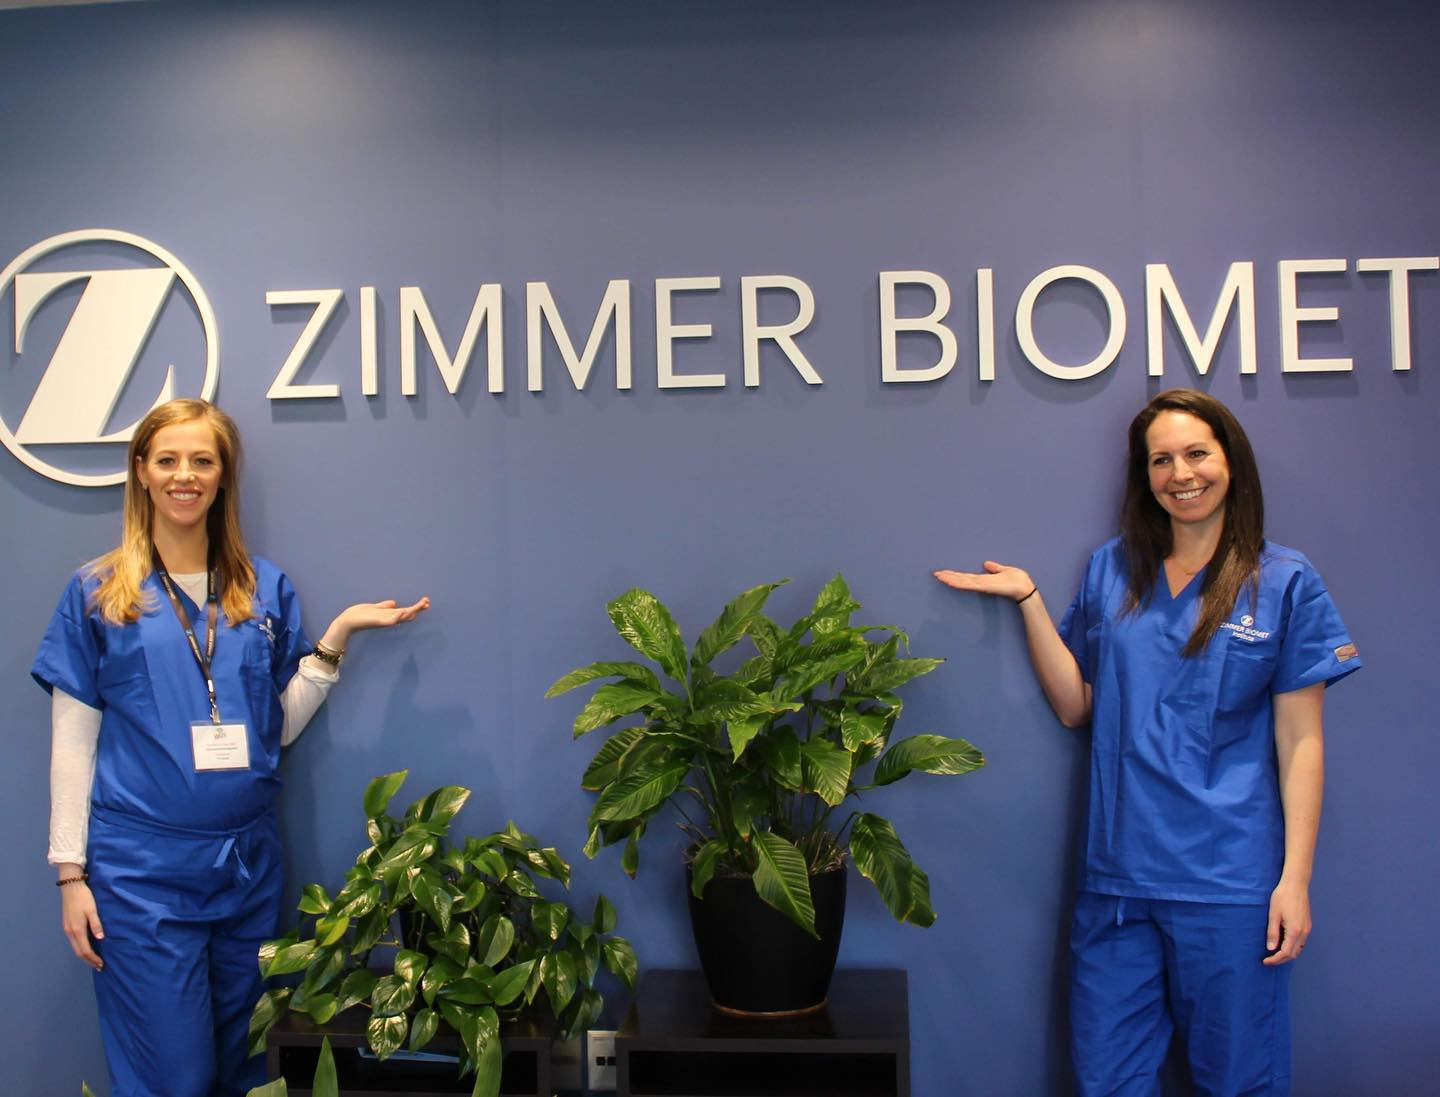 dr. hartman and Dr. Morrow visiting Zimmer biometrics